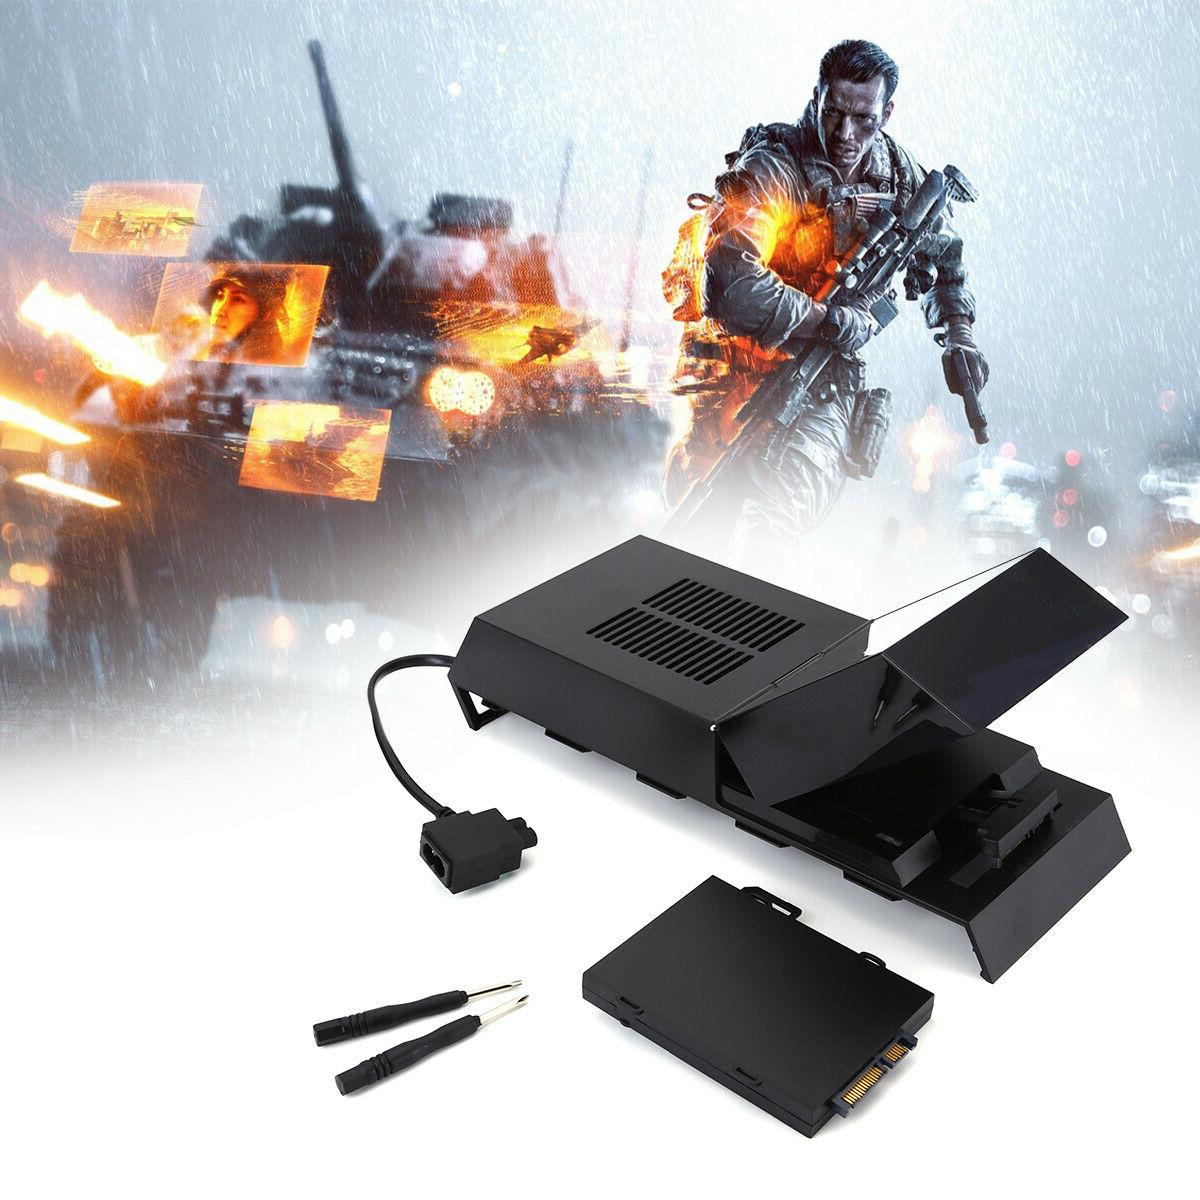 2TB HDD Extra Data Box For Playstation